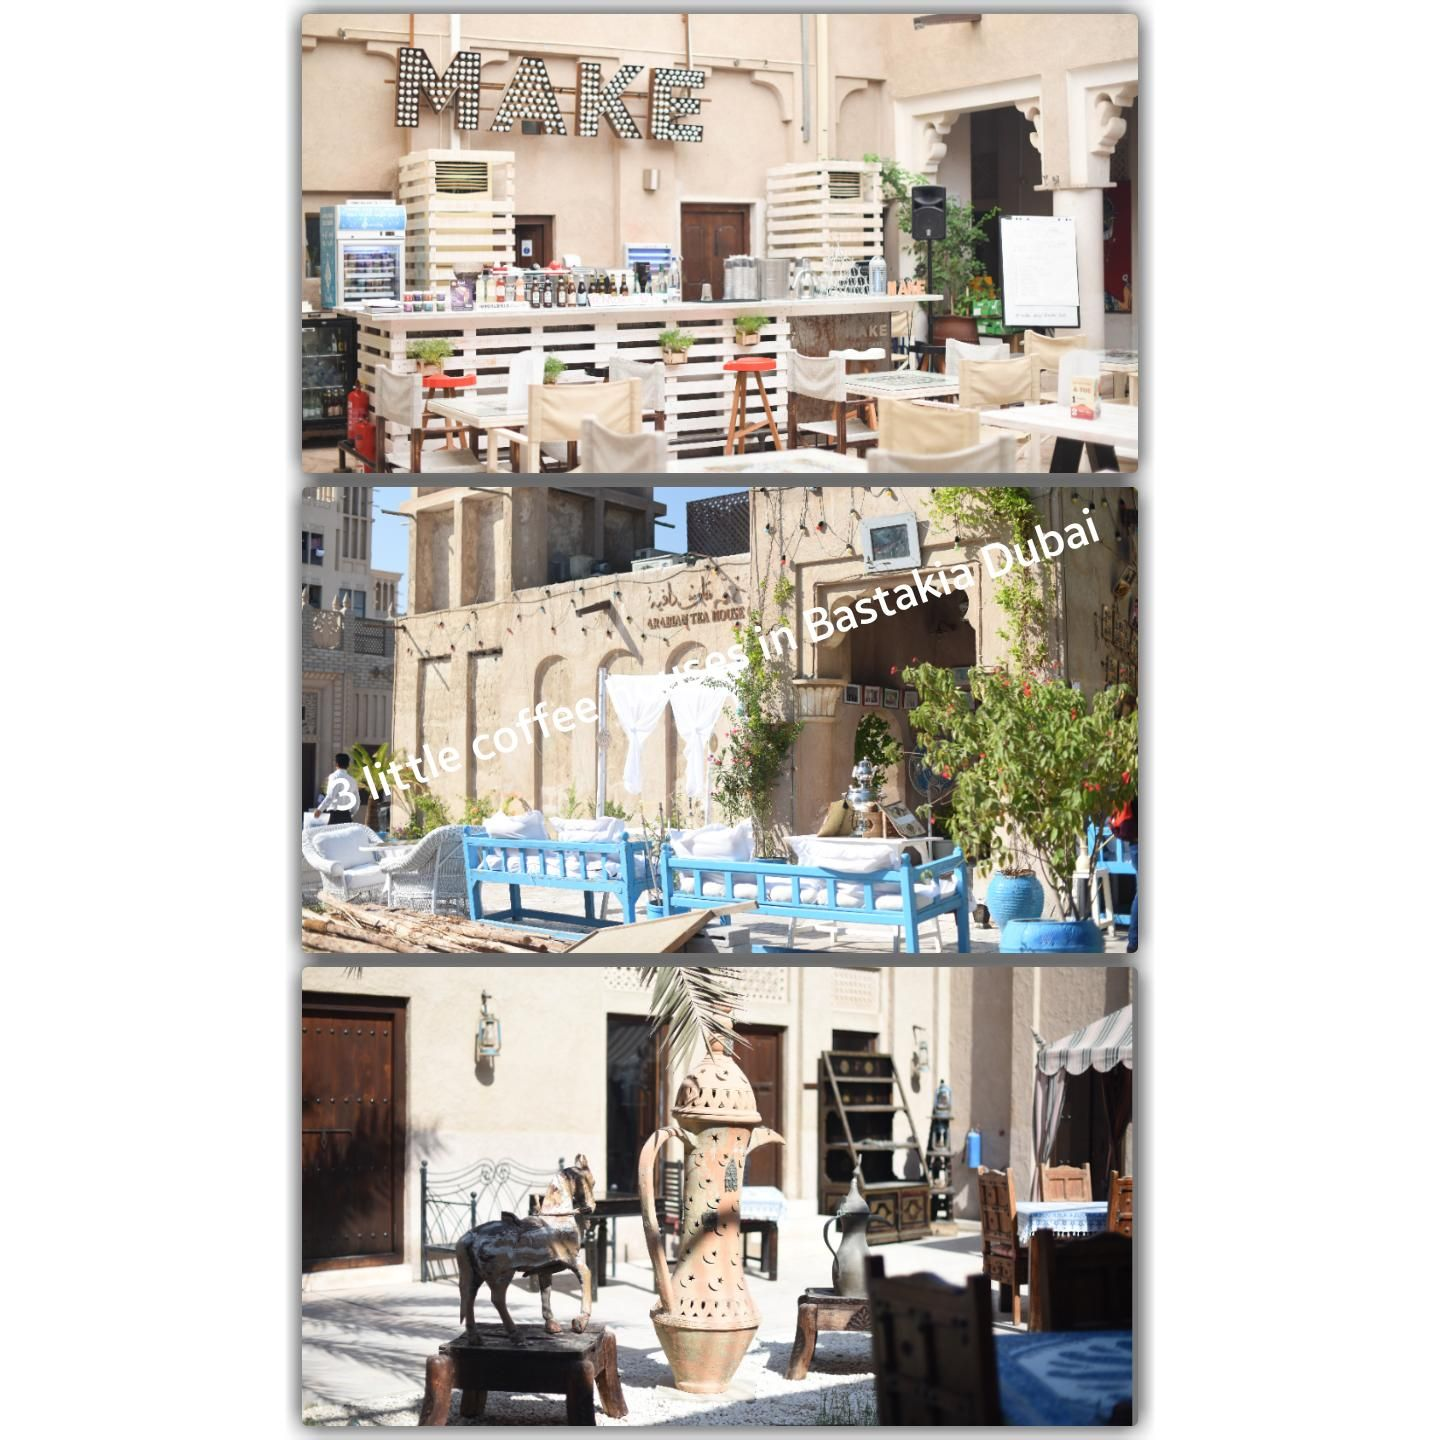 Review of 3 cafes in Bastakia old town Dubai Old town